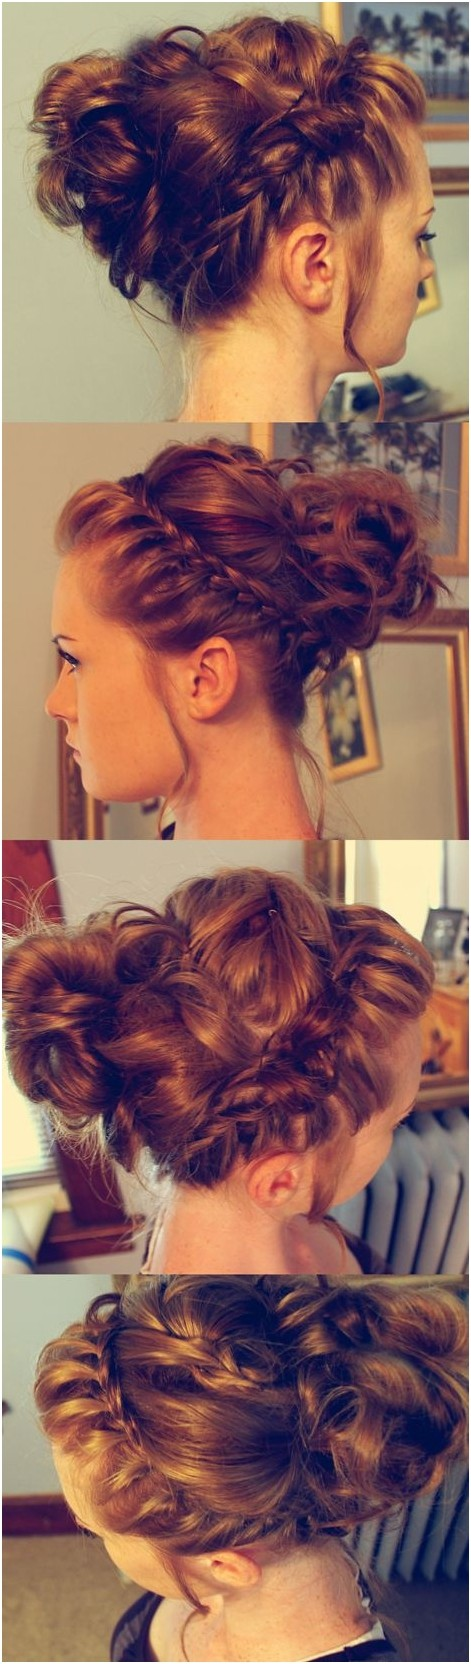 Cute Braids Bun Updos: Holiday Hairstyles